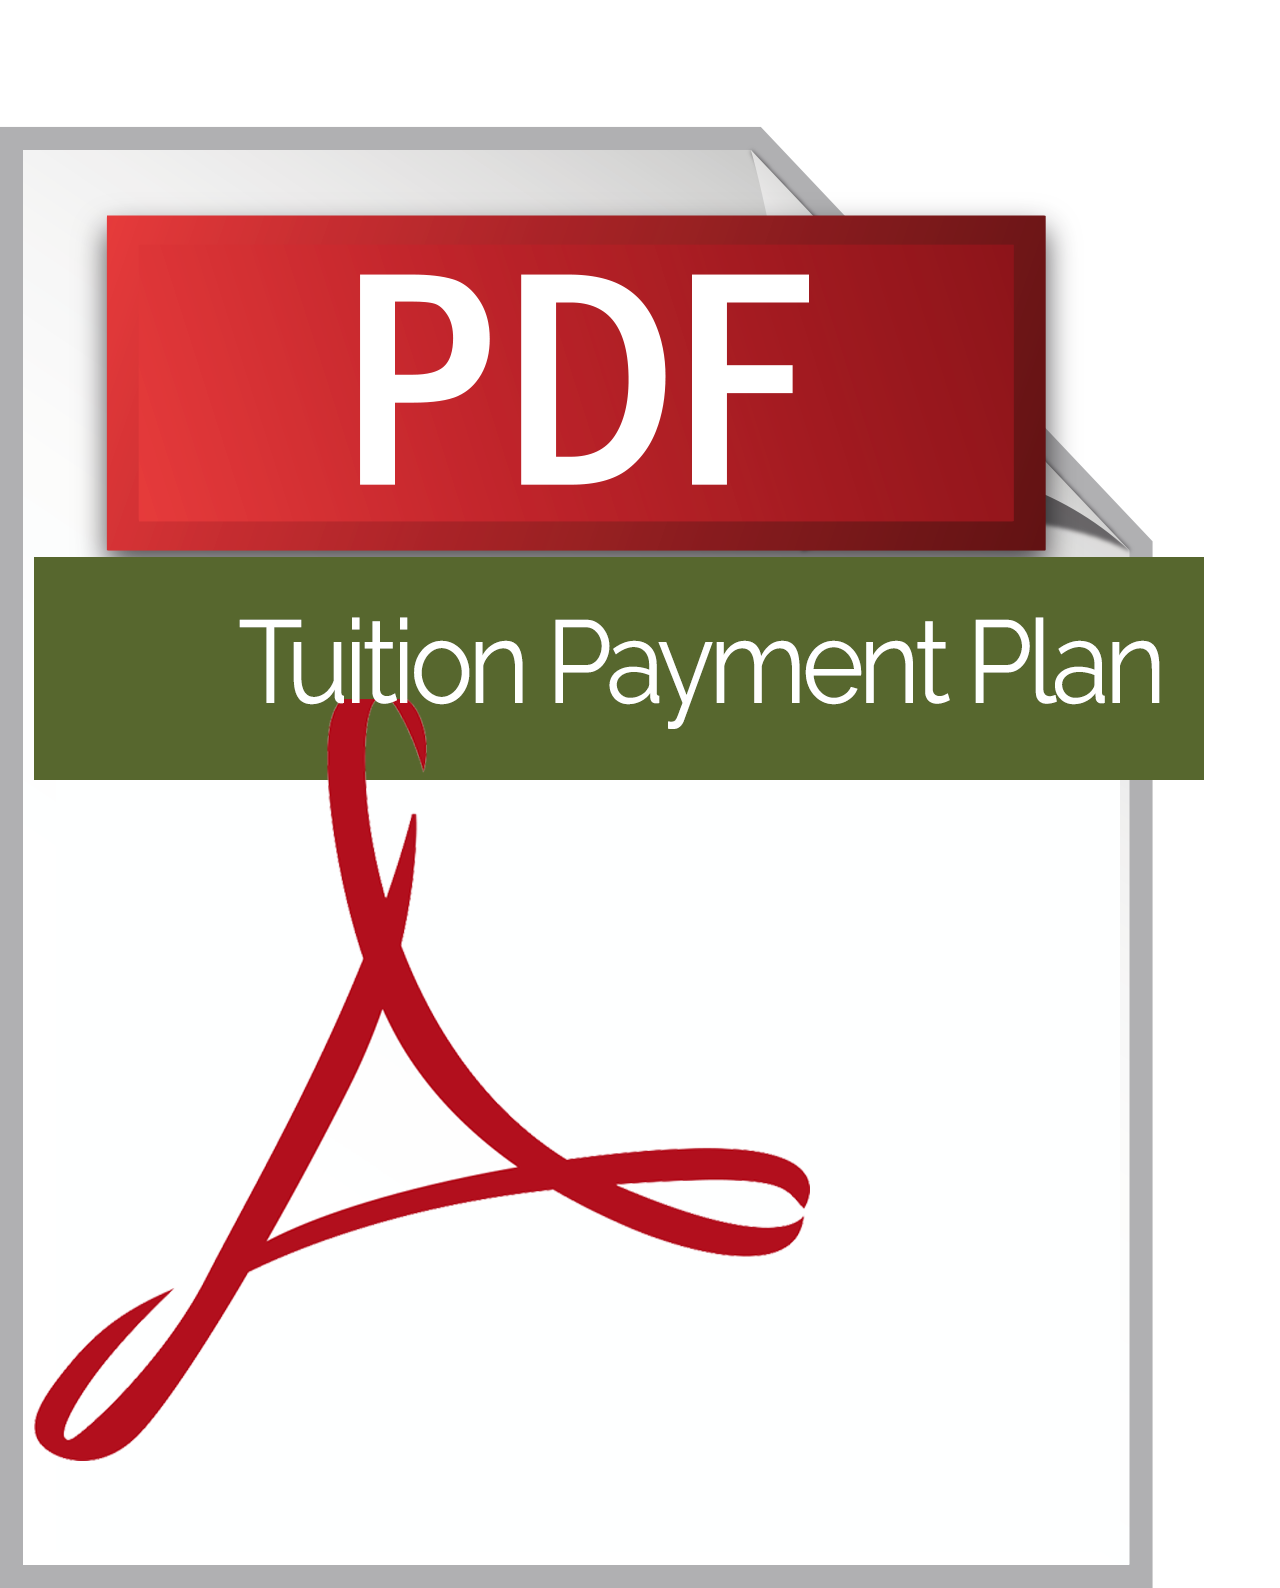 2017-18 Tuition Payment Plan